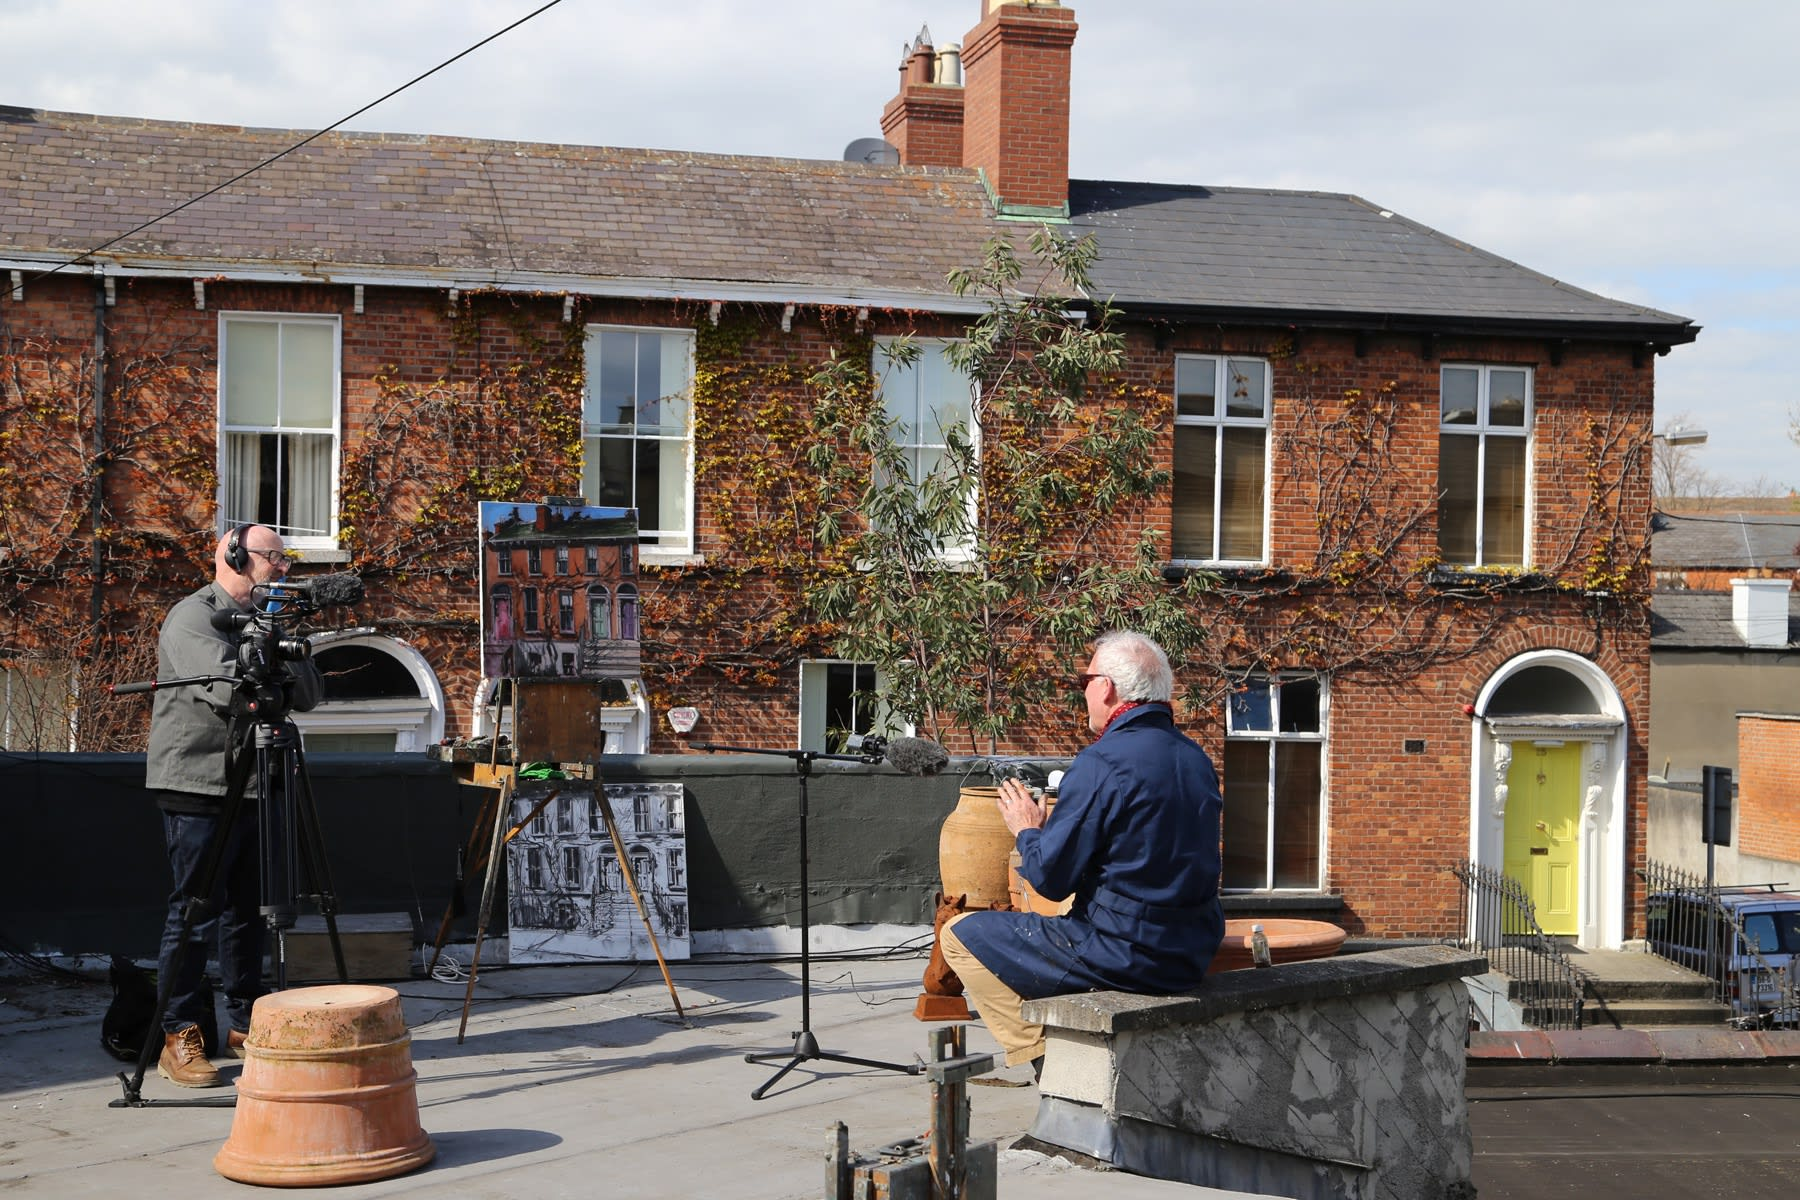 08 APRIL 2020 THE GERARD BYRNE STUDIO, RANELAGH, DUBLIN Gallery Rooftop, The Irish Times Video, behind the scenes video: Bryan O'Brien photo: Agata Byrne